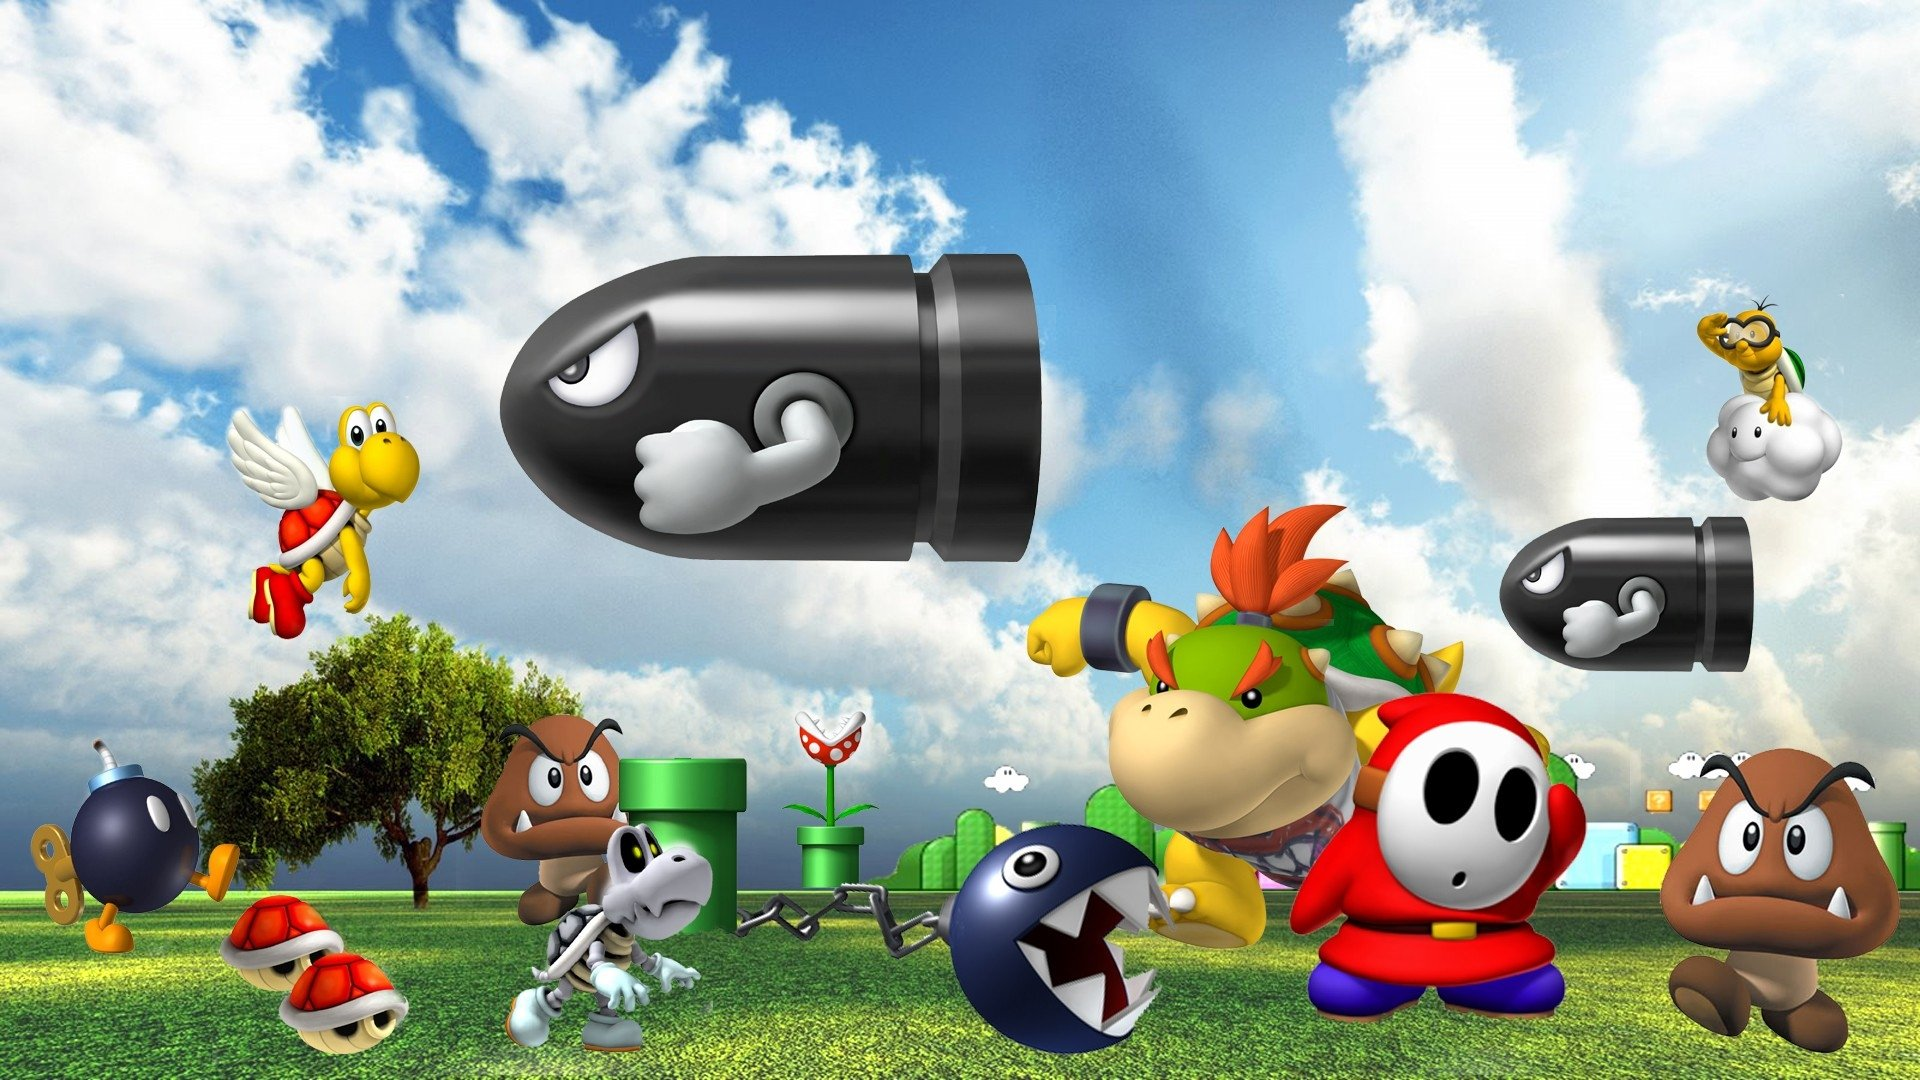 Video Game - Super Mario 64  Bullet Bill Chain Chomp Koopa Troopa Shy Guy Piranha Plant Bob-omb Bowser Jr. Goomba Wallpaper